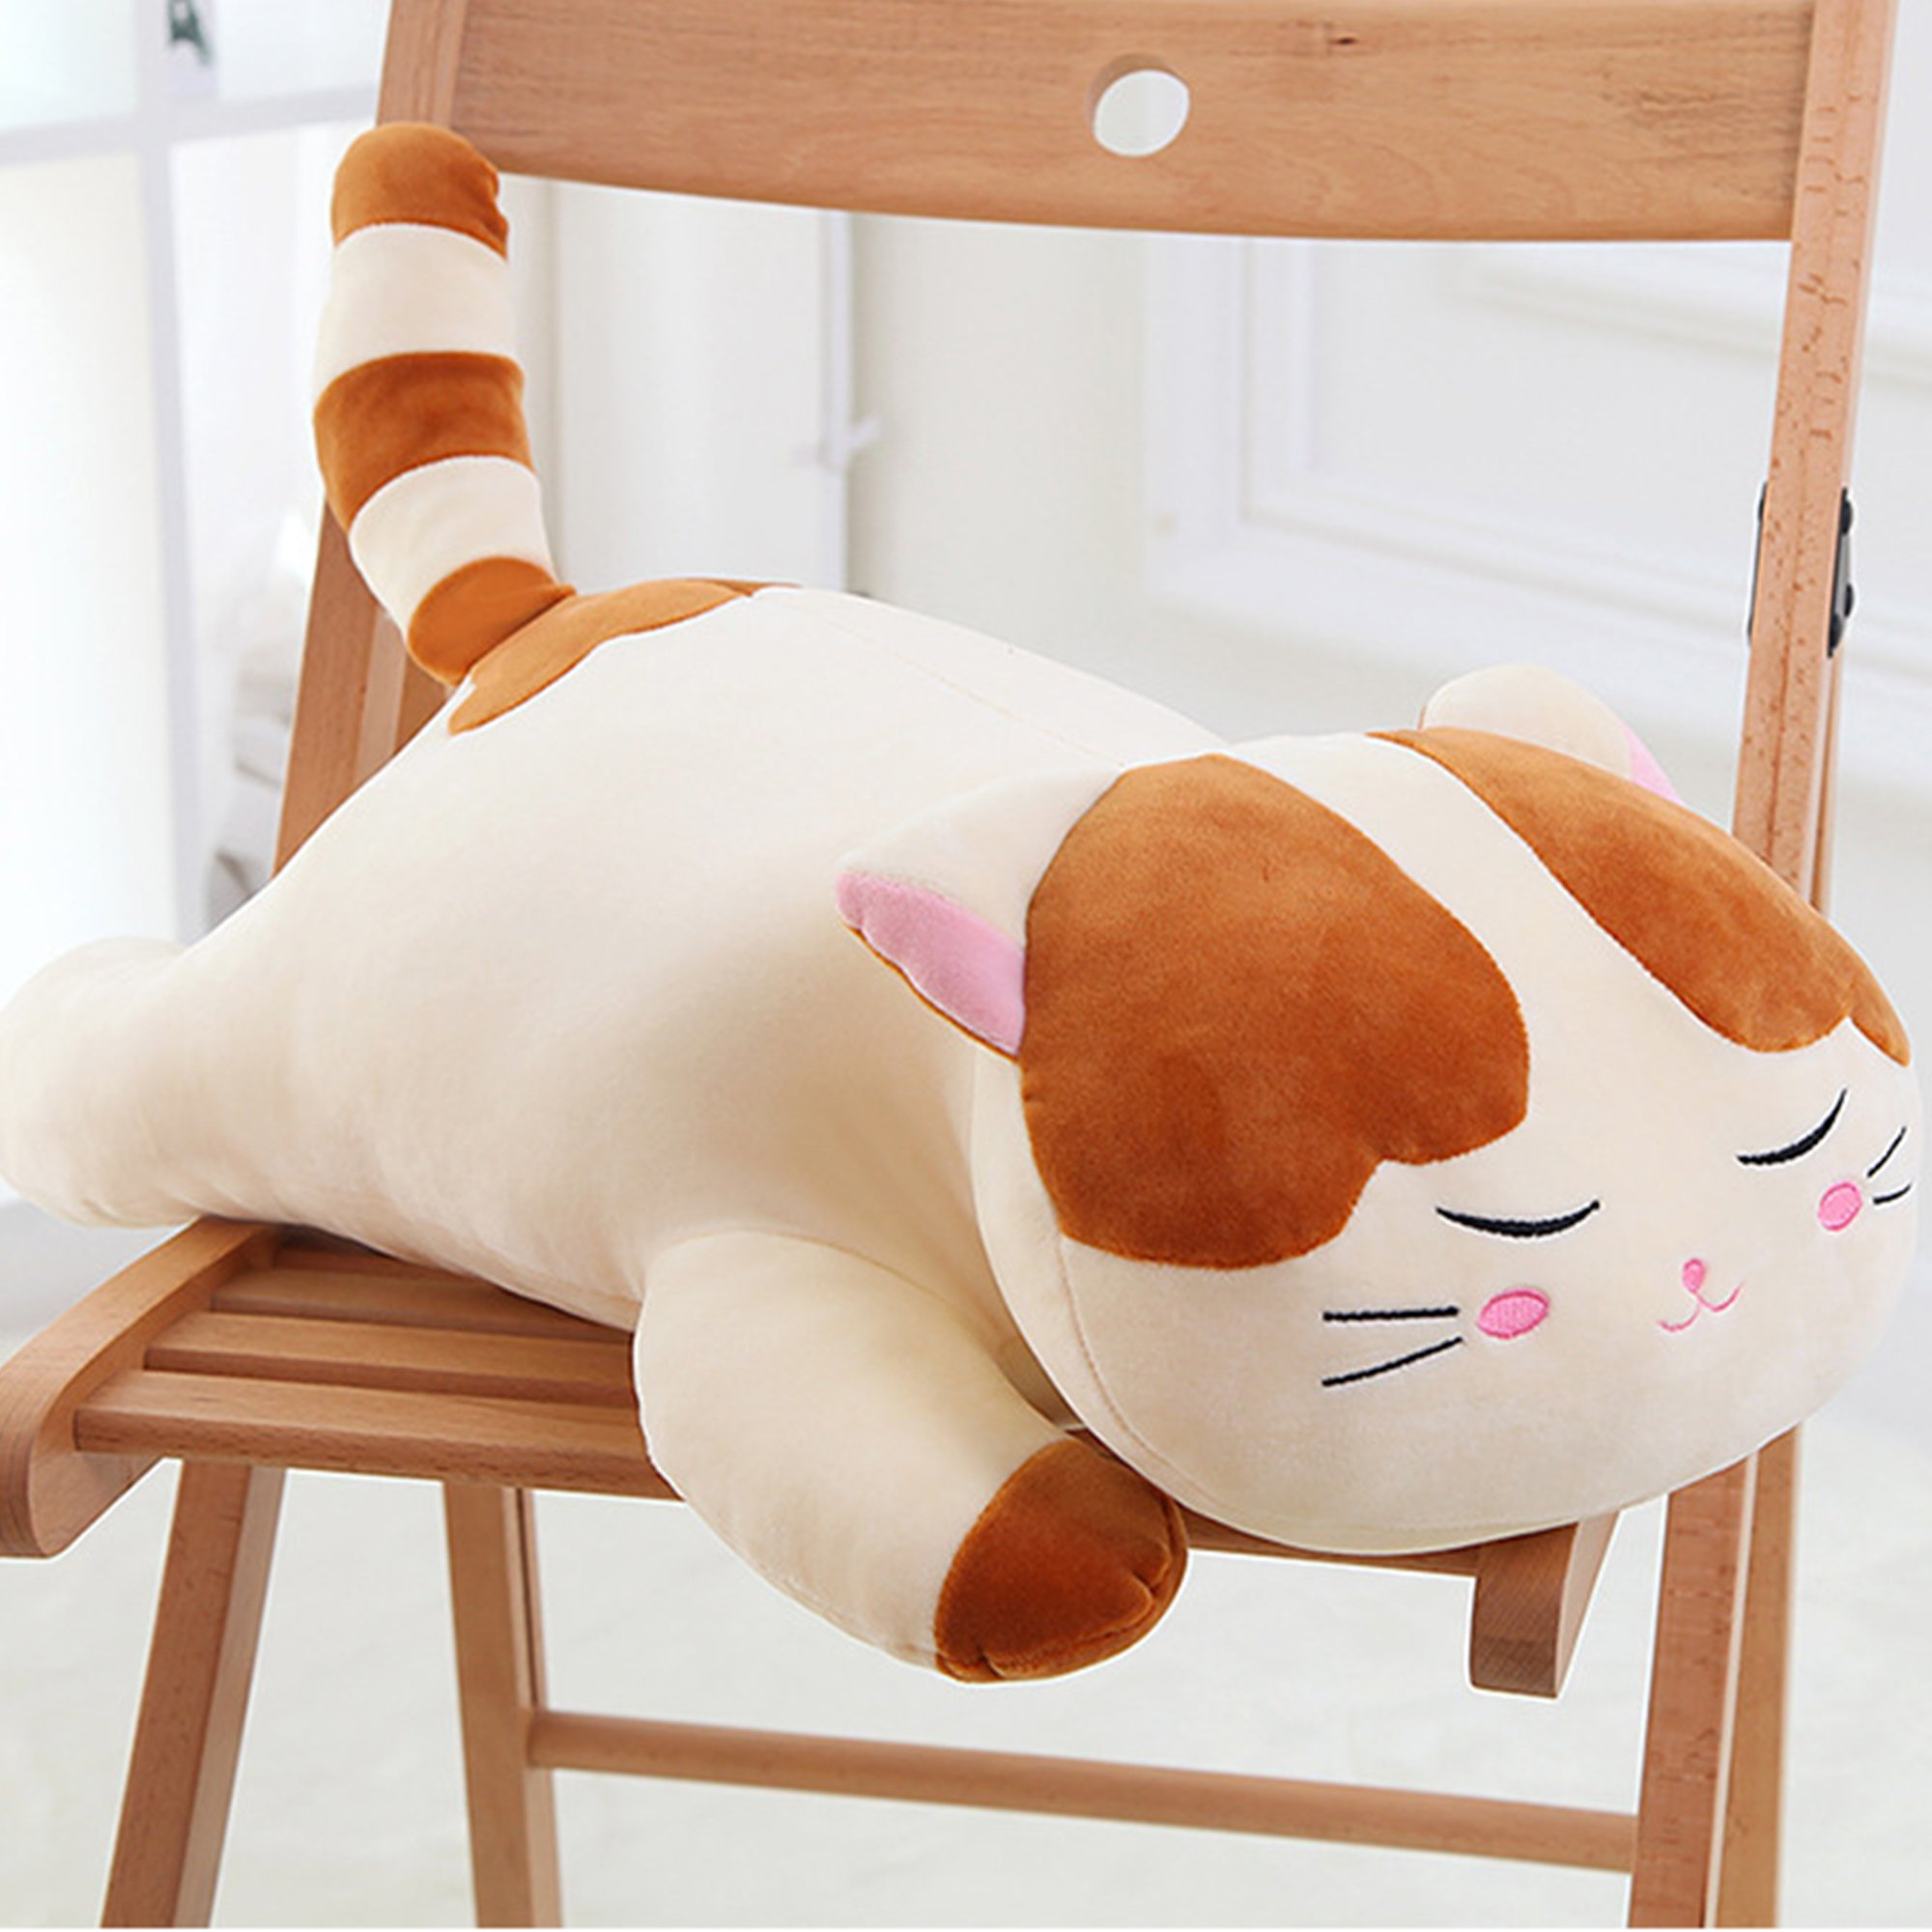 Lazada Plush Cat Stuffed Kitty Super Soft Animal Pillows for Kids Adult Toys 22'' (Brwon)